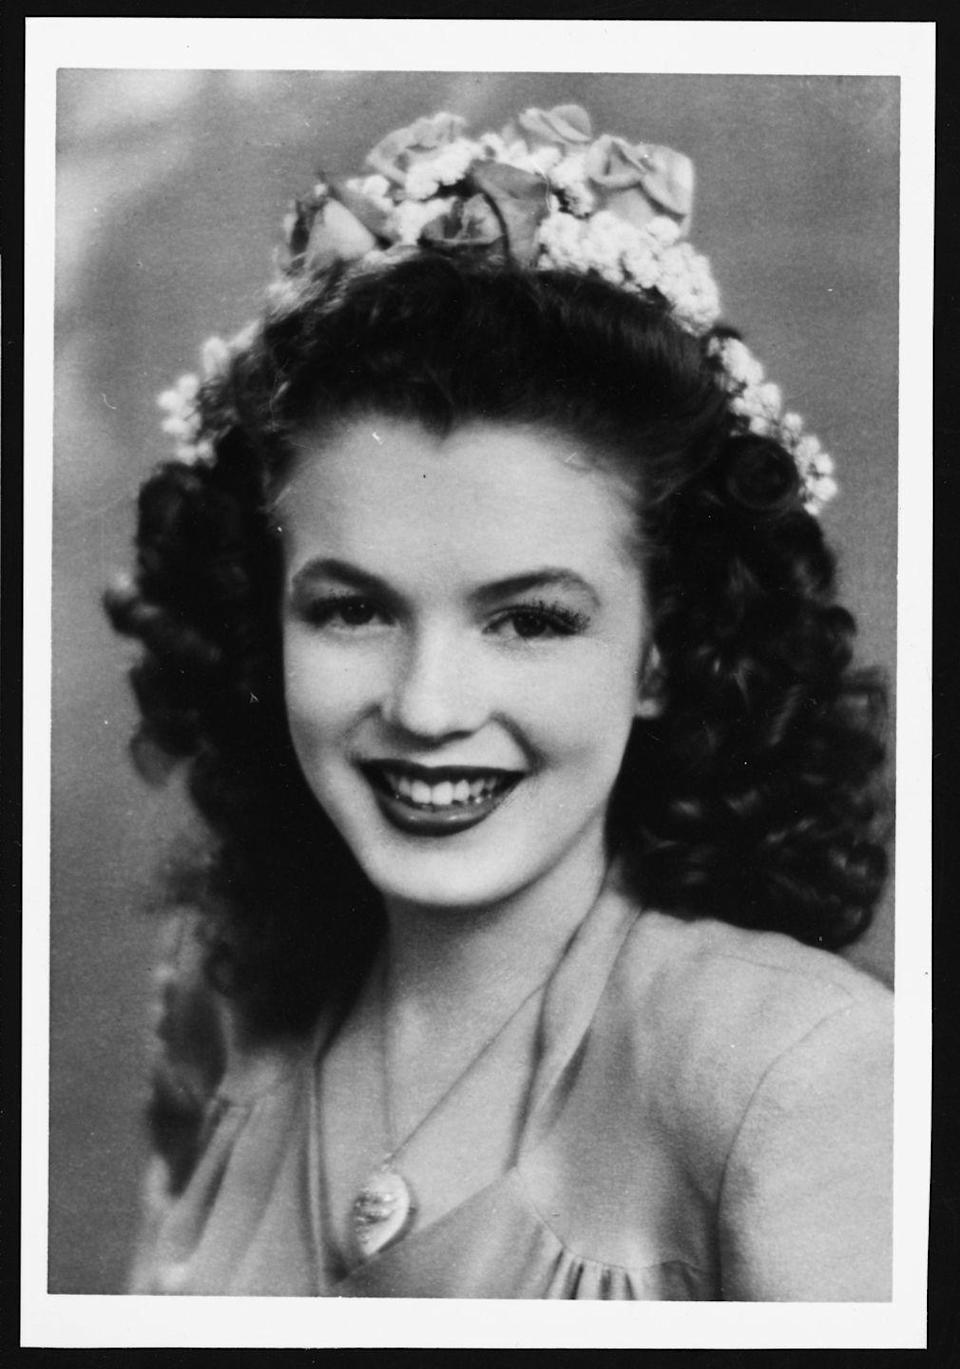 """<p>Before she became the world's most famous blonde bombshell, Monroe, born Norma Jeane, was a brunette with a dream. The starlet broke out in the 1950s after landing roles in <em>Gentlemen Prefer Blondes</em> and <em>How to Marry a Millionaire</em>.</p><p><strong>RELATED: </strong><a href=""""https://www.goodhousekeeping.com/life/g36106327/marilyn-monroe-final-interview/"""" rel=""""nofollow noopener"""" target=""""_blank"""" data-ylk=""""slk:16 Things We Learned About Marilyn Monroe From Her Final Interview"""" class=""""link rapid-noclick-resp"""">16 Things We Learned About Marilyn Monroe From Her Final Interview</a></p>"""